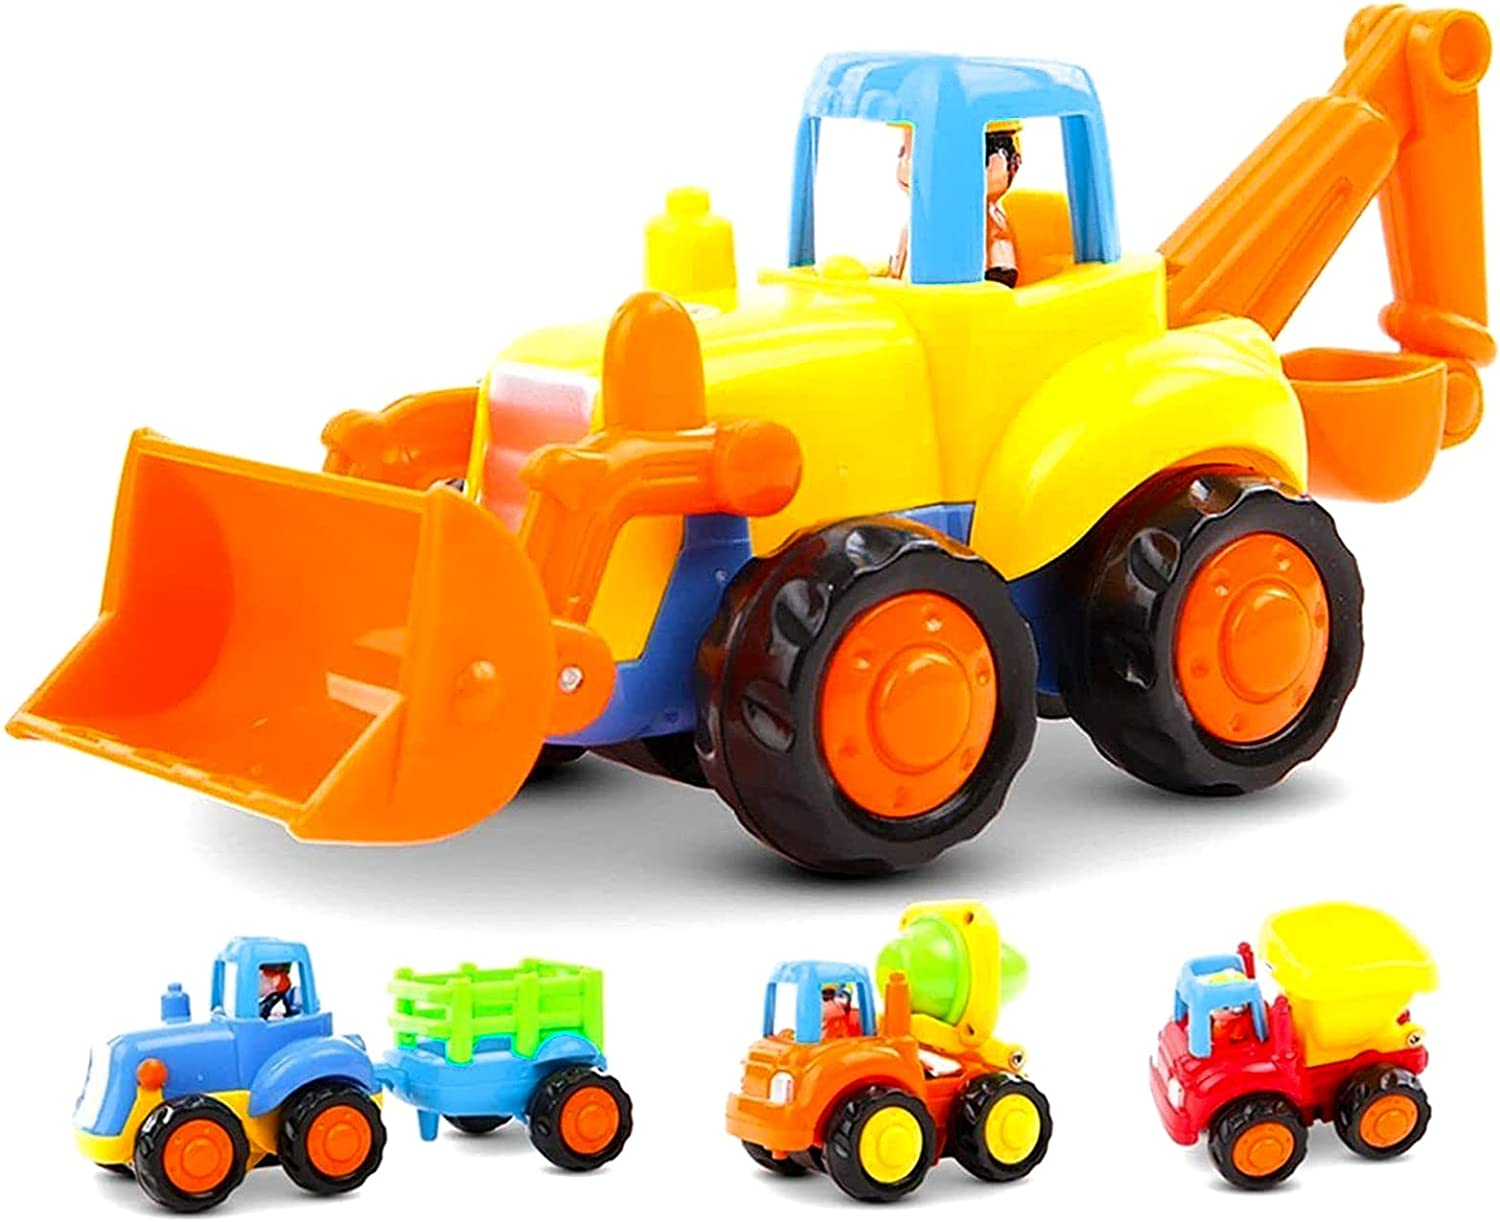 Children welltop Pull Back and Go Toy Cars 3 Pack Construction Vehicles Mini Construction Friction Powered Car Creativity for Kids Toddler Interesting Toys